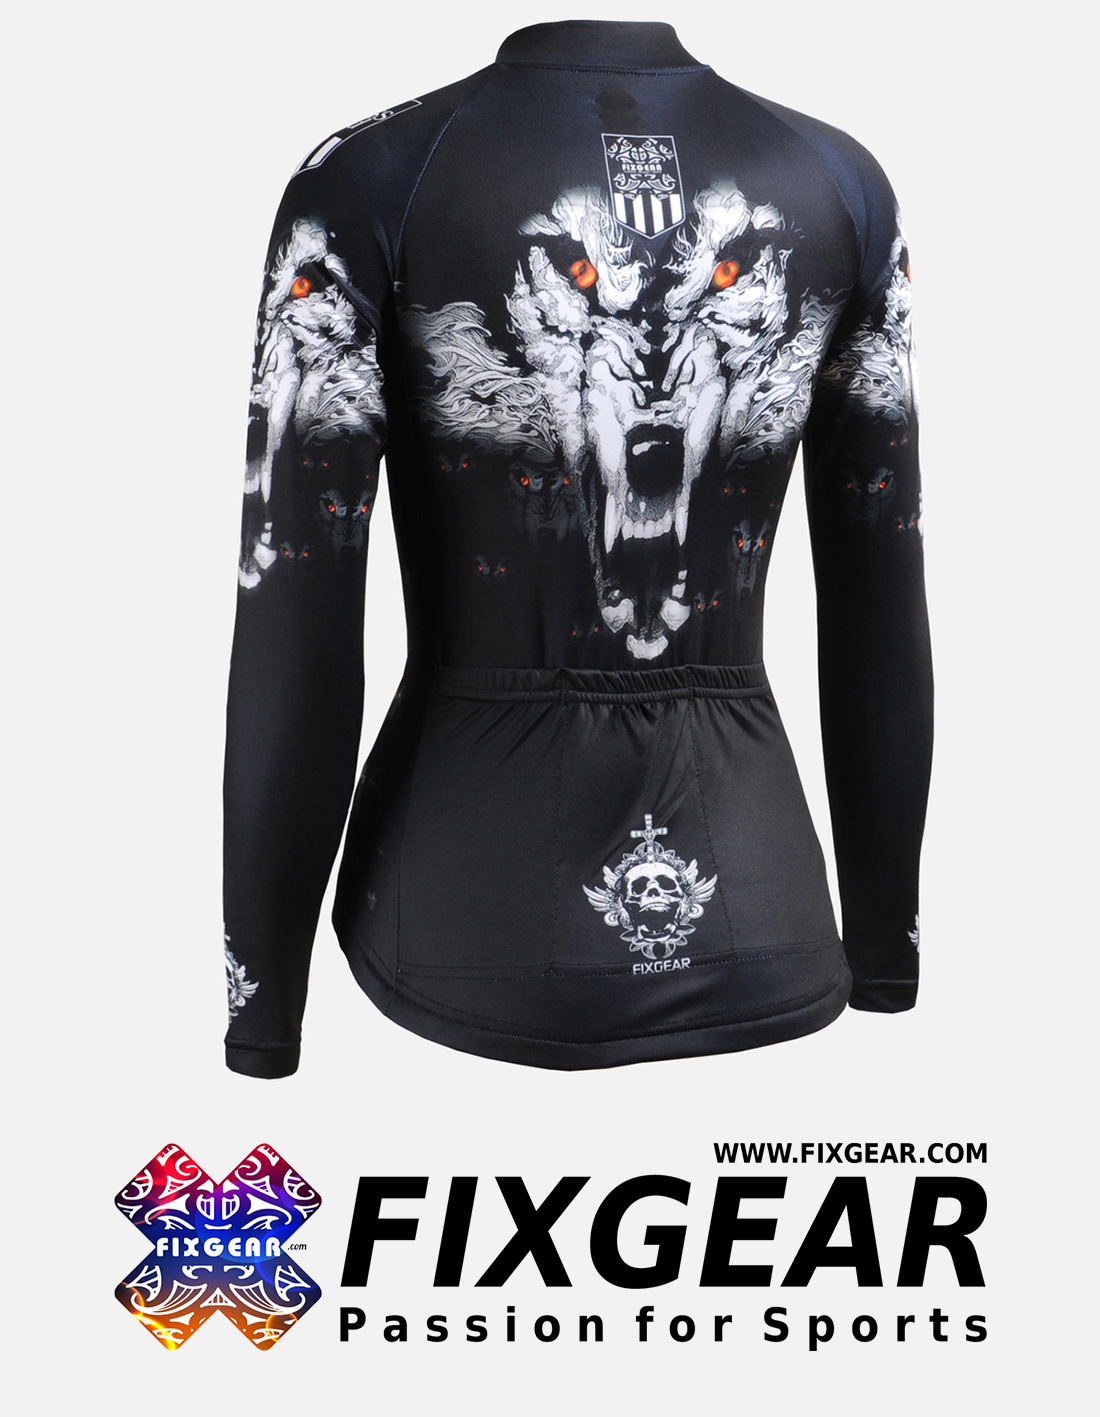 FIXGEAR CS-W1801 Women's Long Sleeve Jersey